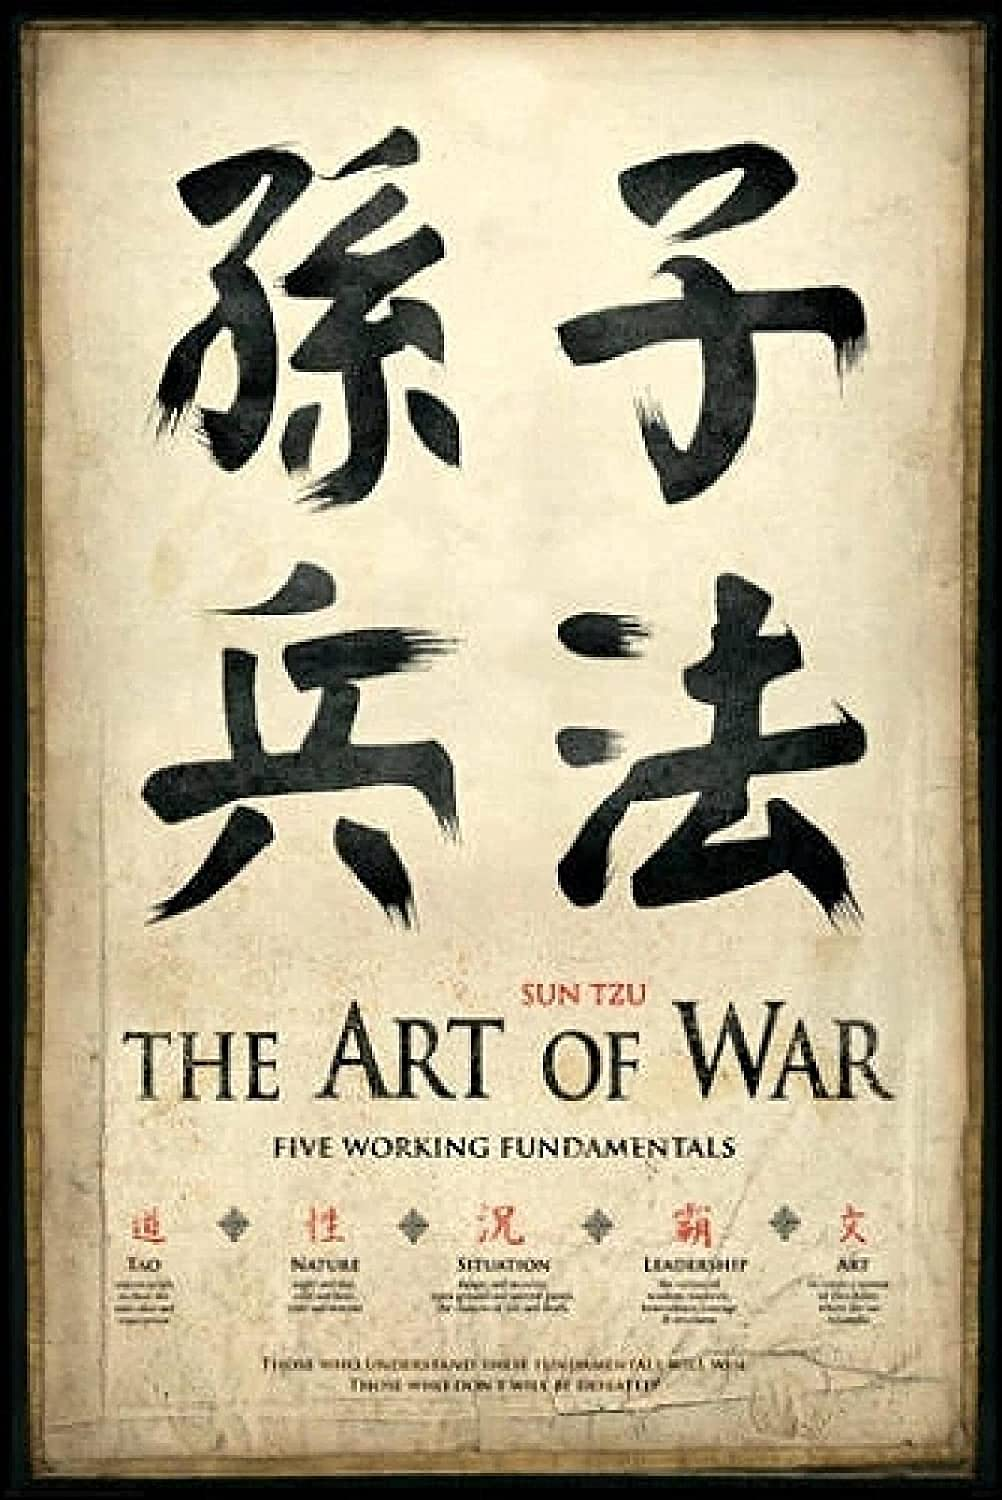 MXXC Nordic Style Art of WAR Print Film Popular product Wall Home Dec Poster Free Shipping Cheap Bargain Gift